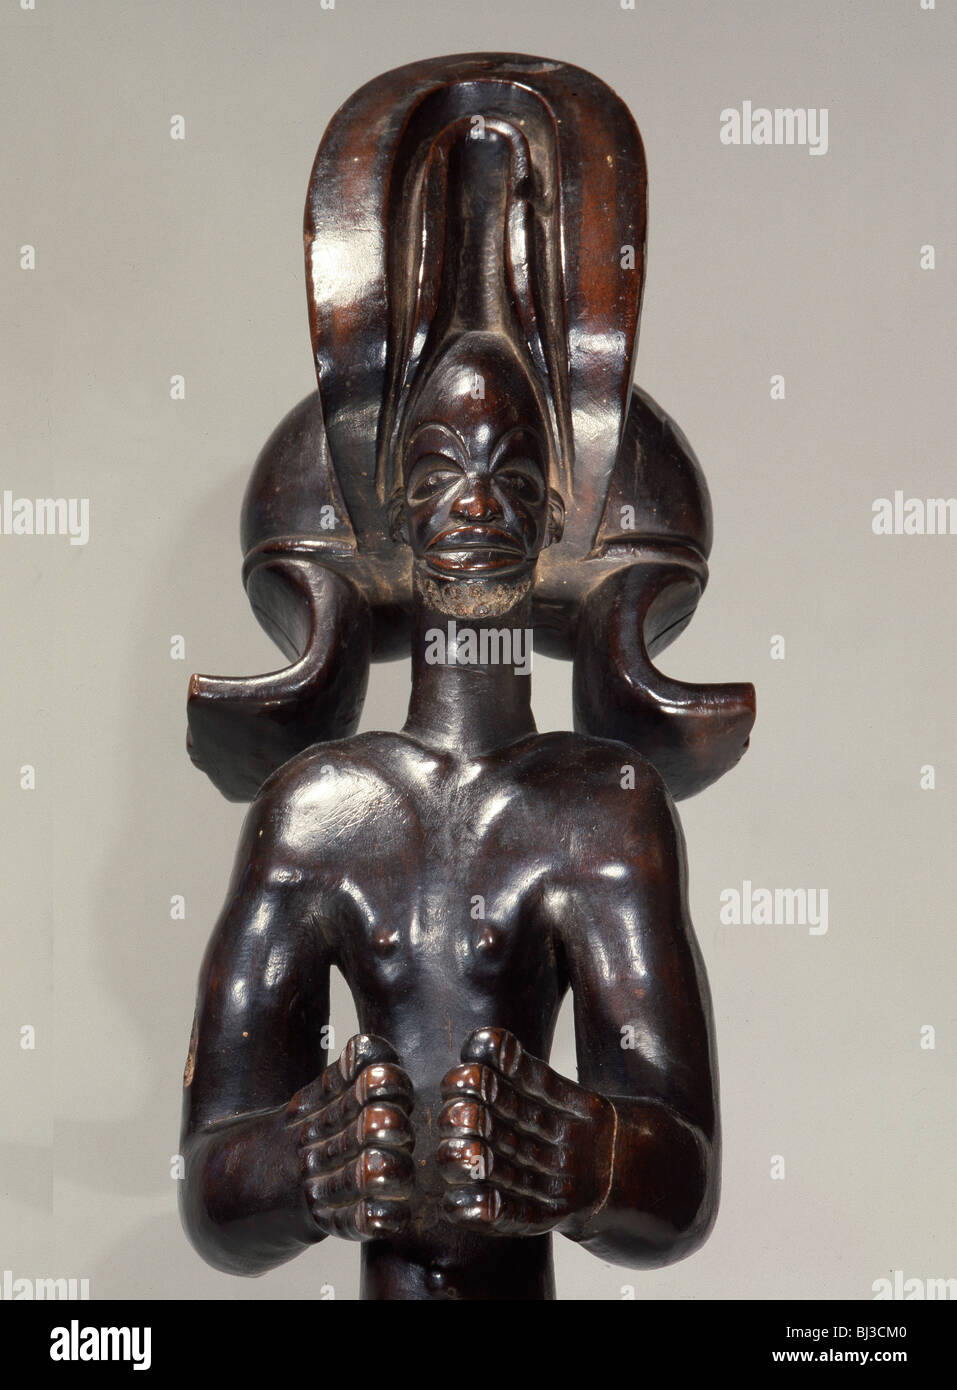 Chokwe wooden figure, northern Angola or south-west DR Congo, 19th-20th century. Artist: Werner Forman - Stock Image